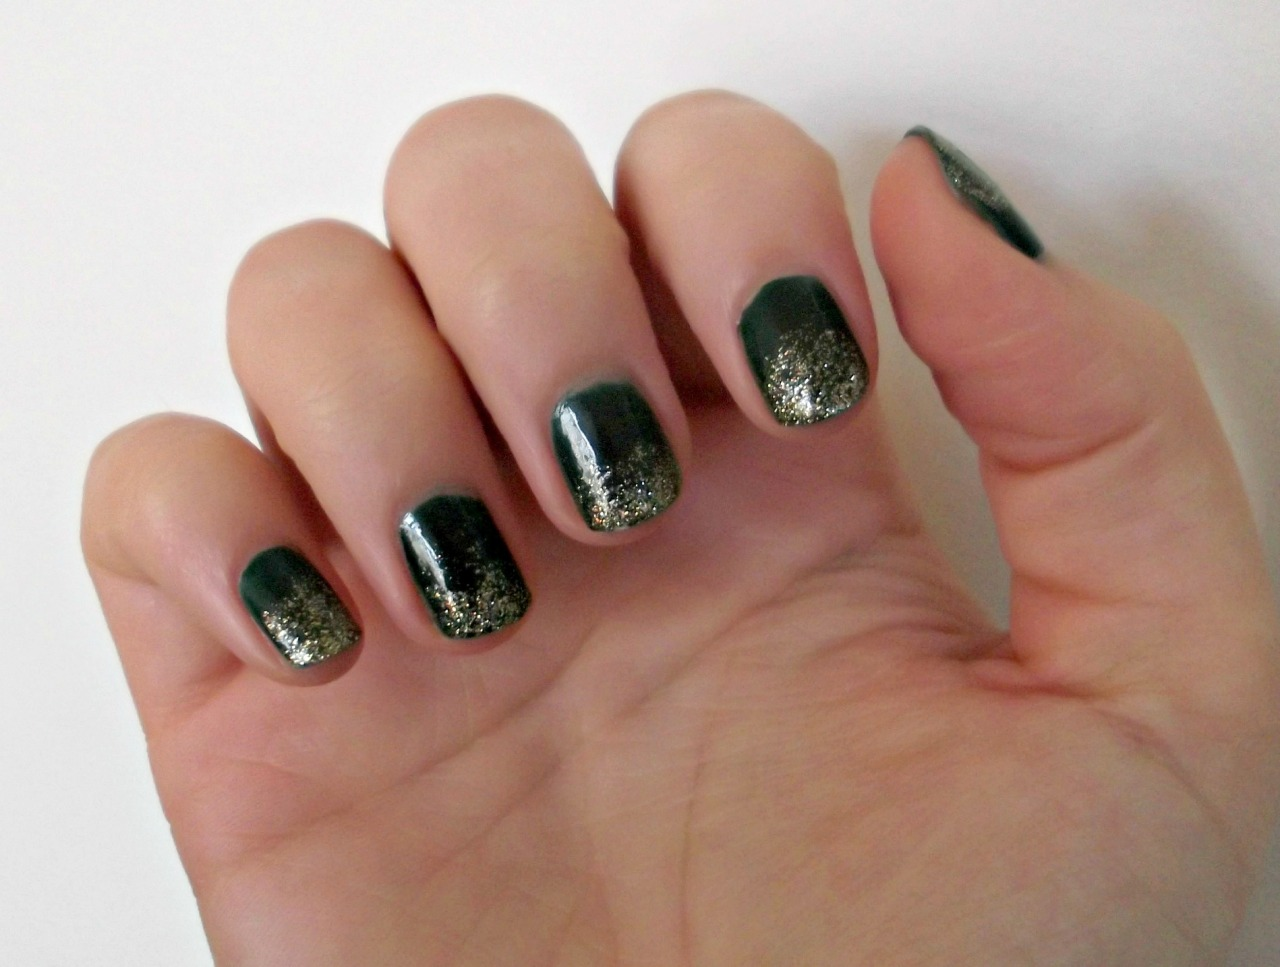 Happy 2013! I decided try a glitter gradient on Christmas day and my left hand turned out pretty well, but my right… not so much. So here, have a picture of my left hand. I used Butter London British Racing Green and West End Wonderland.